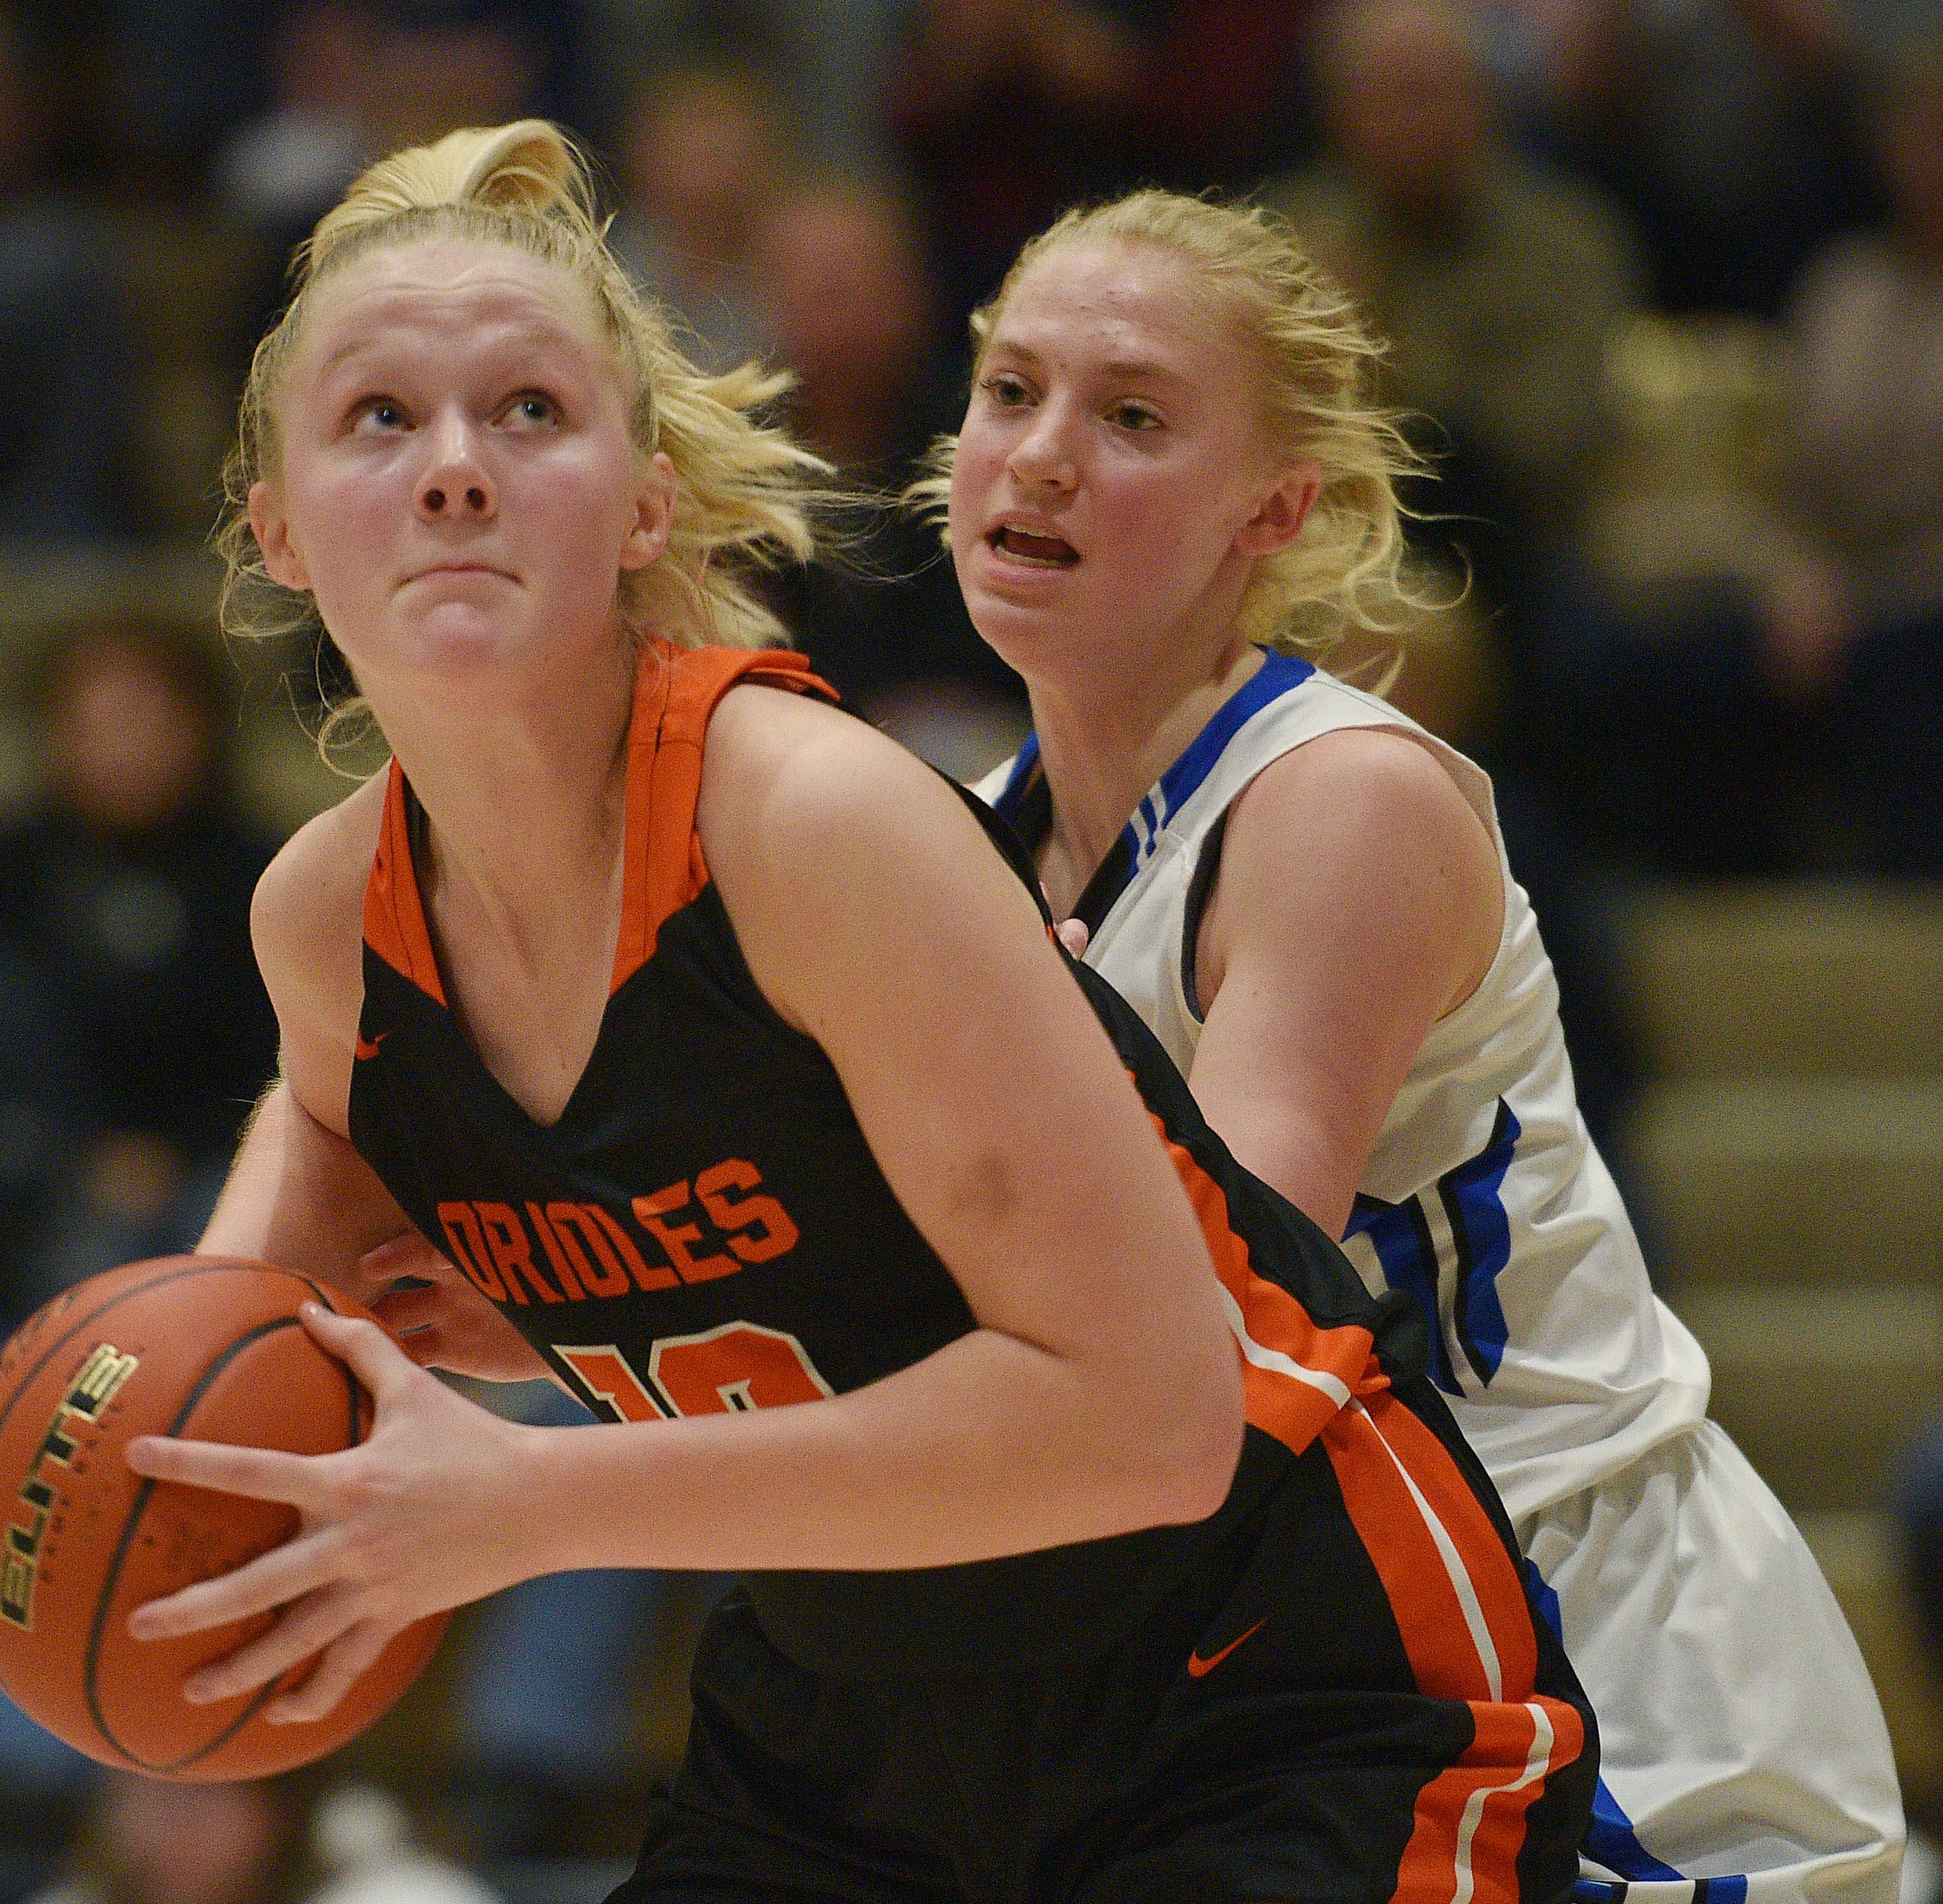 On Preps: Lennox shows heart, St. Thomas More grows up in Hanson Classic thriller